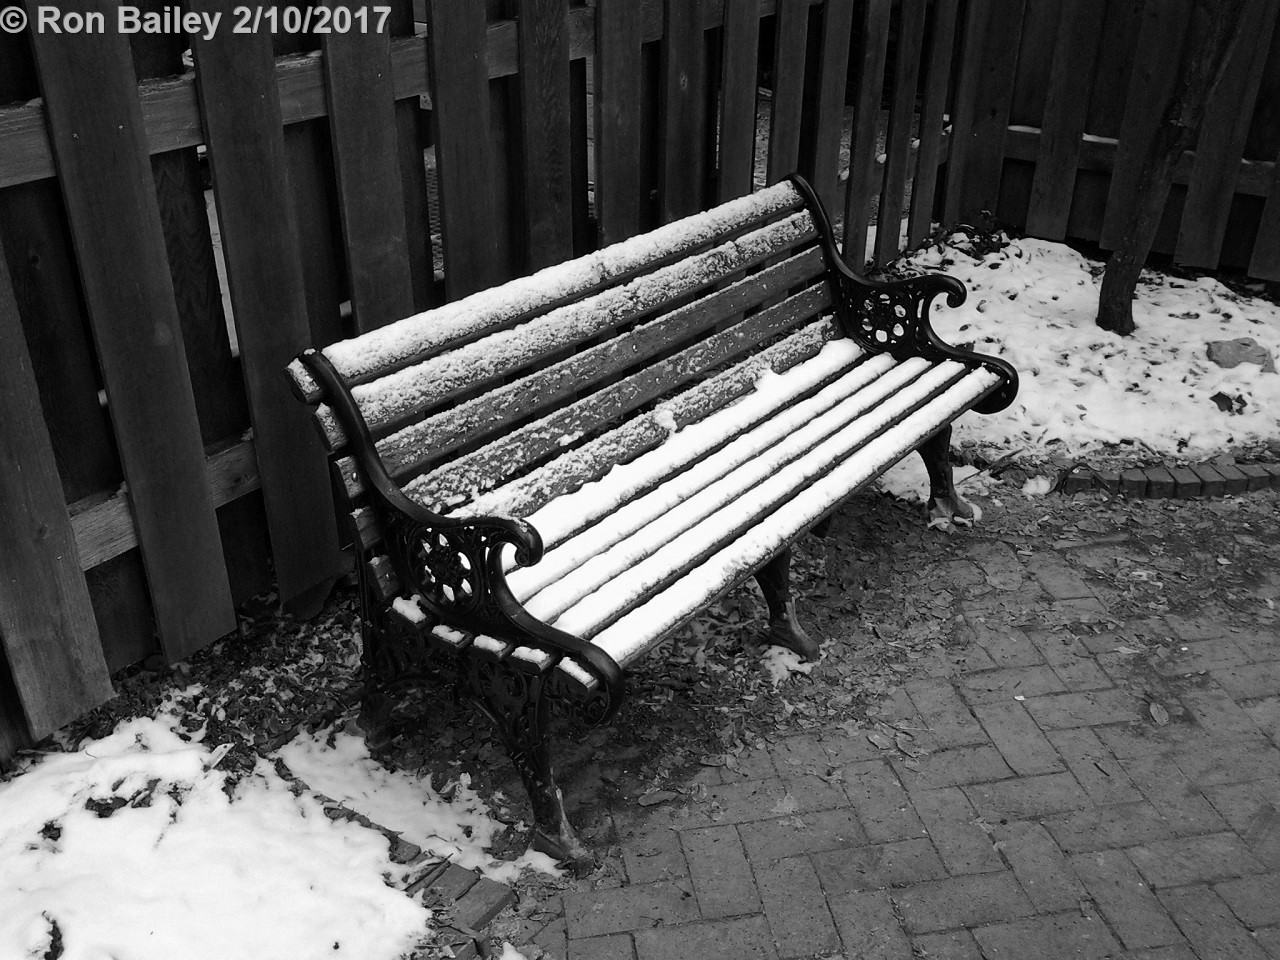 Seats in Black-and-White 2-10-2017 10-24-04 AM